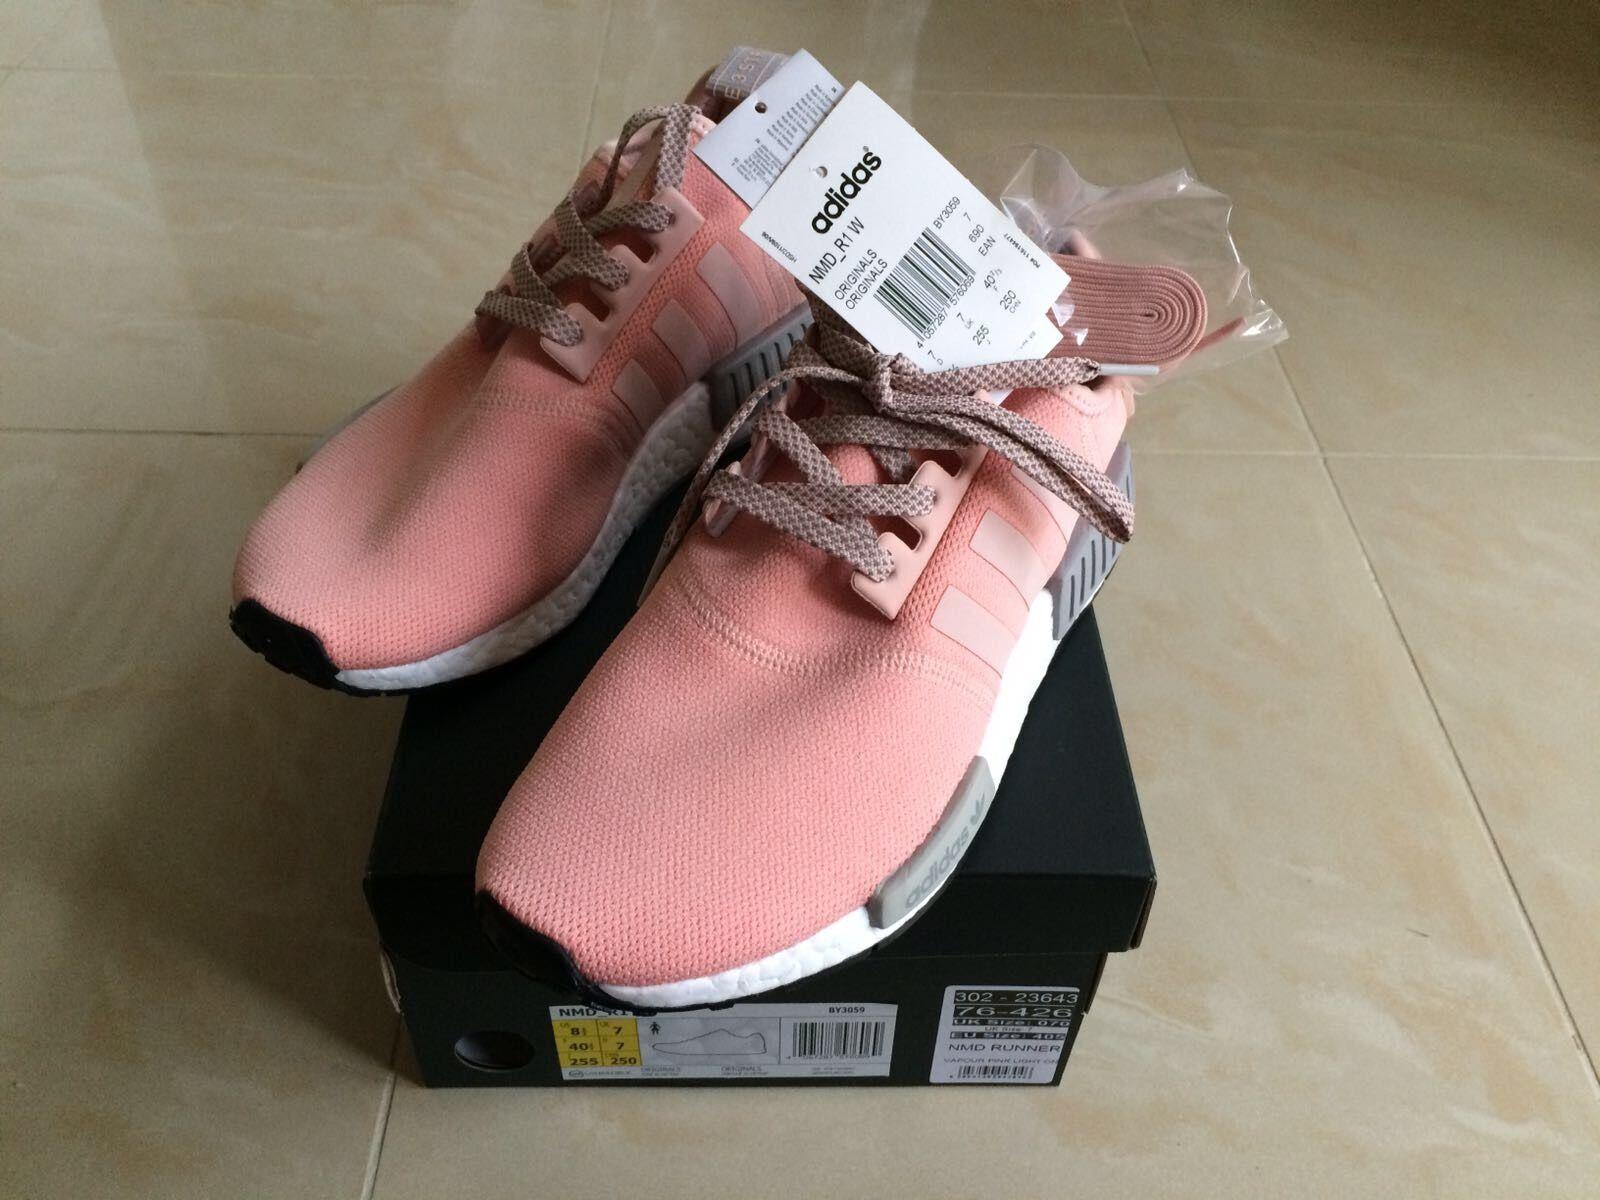 ADIDAS NMD R1 RUNNER RAW VAPOUR PINK GREY OFFICE EXCLUSIVE 6 ALL SIZES 4 5 6 EXCLUSIVE 7 8 9 596e6a